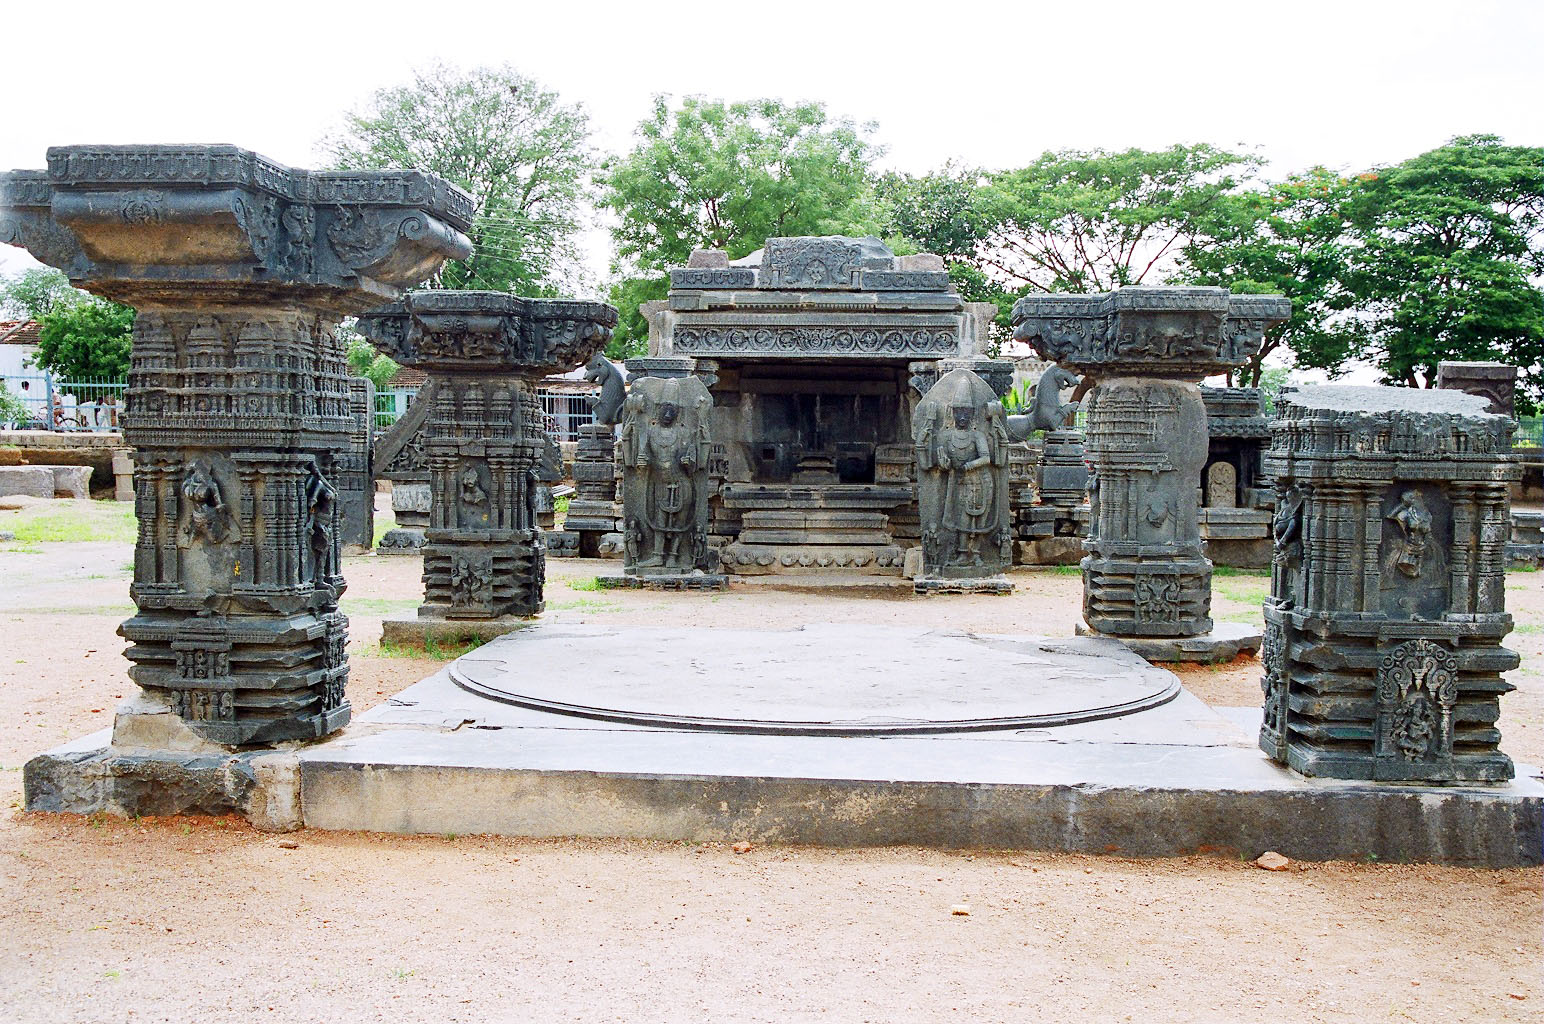 Warangal Fort-Warangal Fort belongs to the 13th century when it was constructed by King Ganapati Deva. The fort was intended to be his second capital. The exquisite carved pillars and arches add attraction to the fort. The fort houses a temple, which is dedicated to Swayambhudevi, Mother Earth.